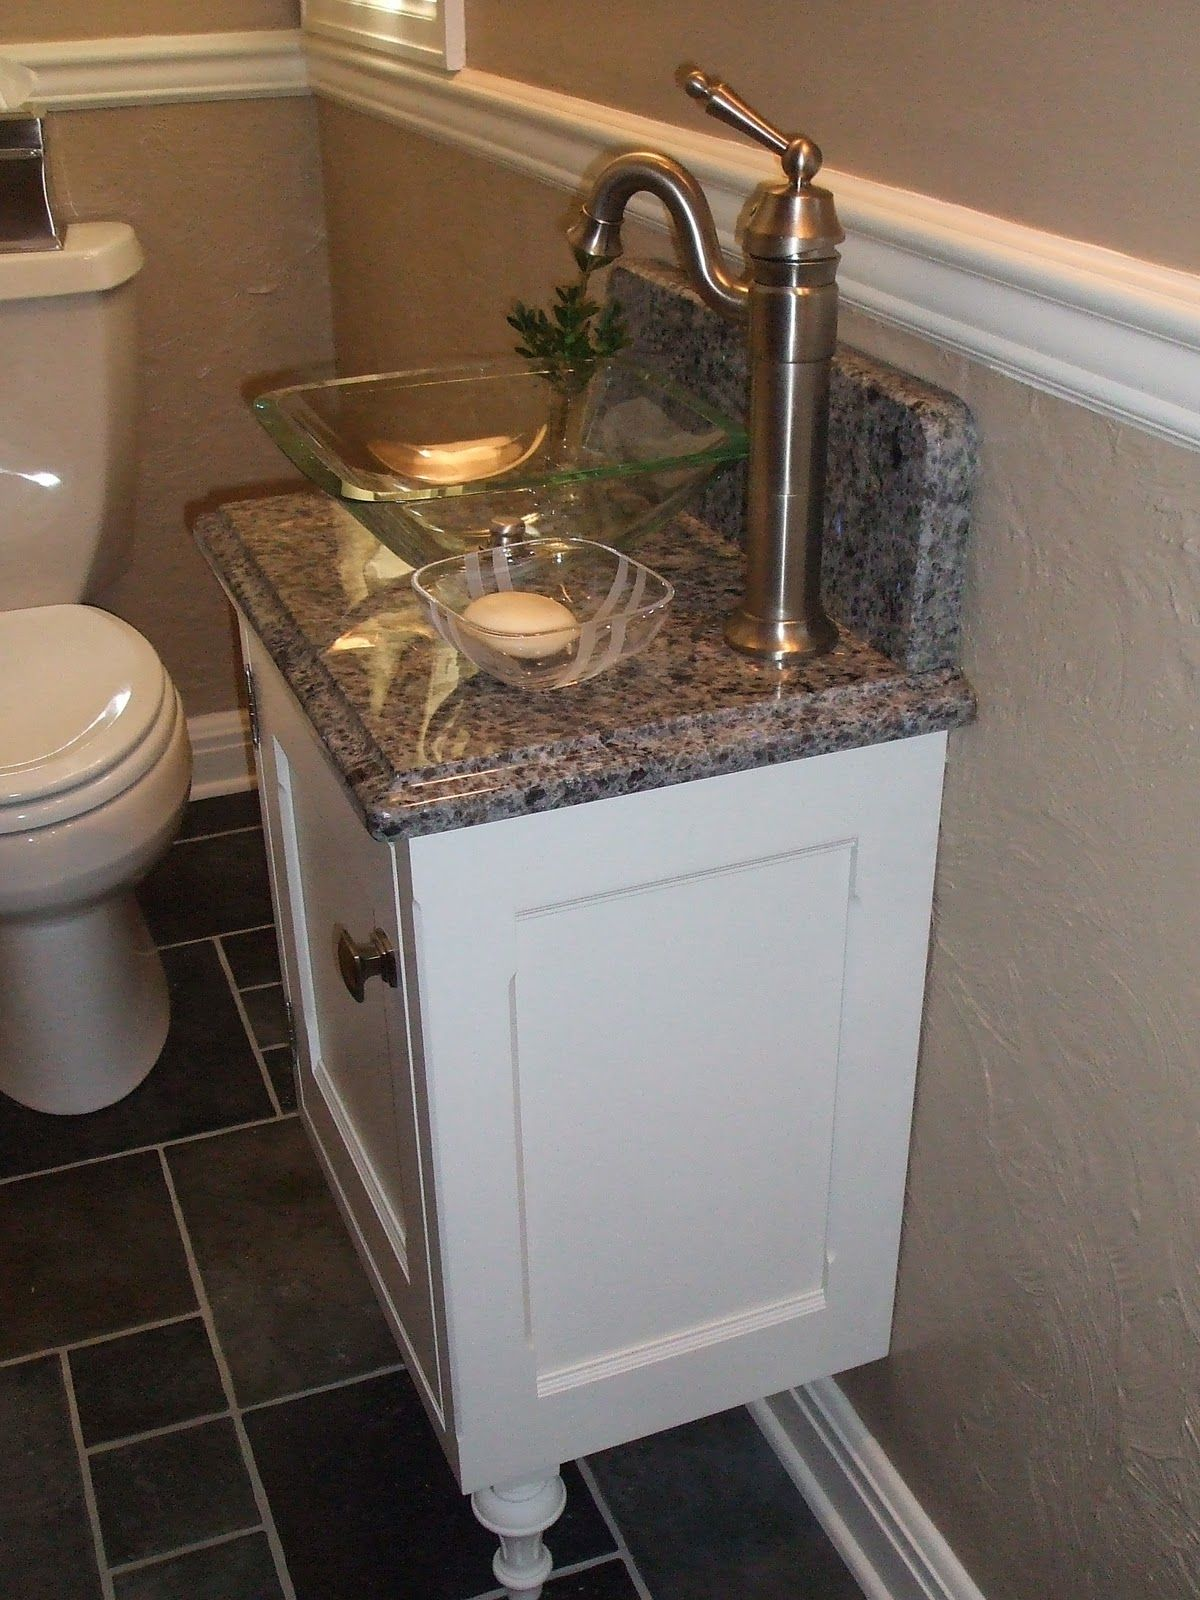 Luxurious White Small Vanity And Glass Bowl Sink On Gray Marble - Bathroom sinks and vanities for small spaces